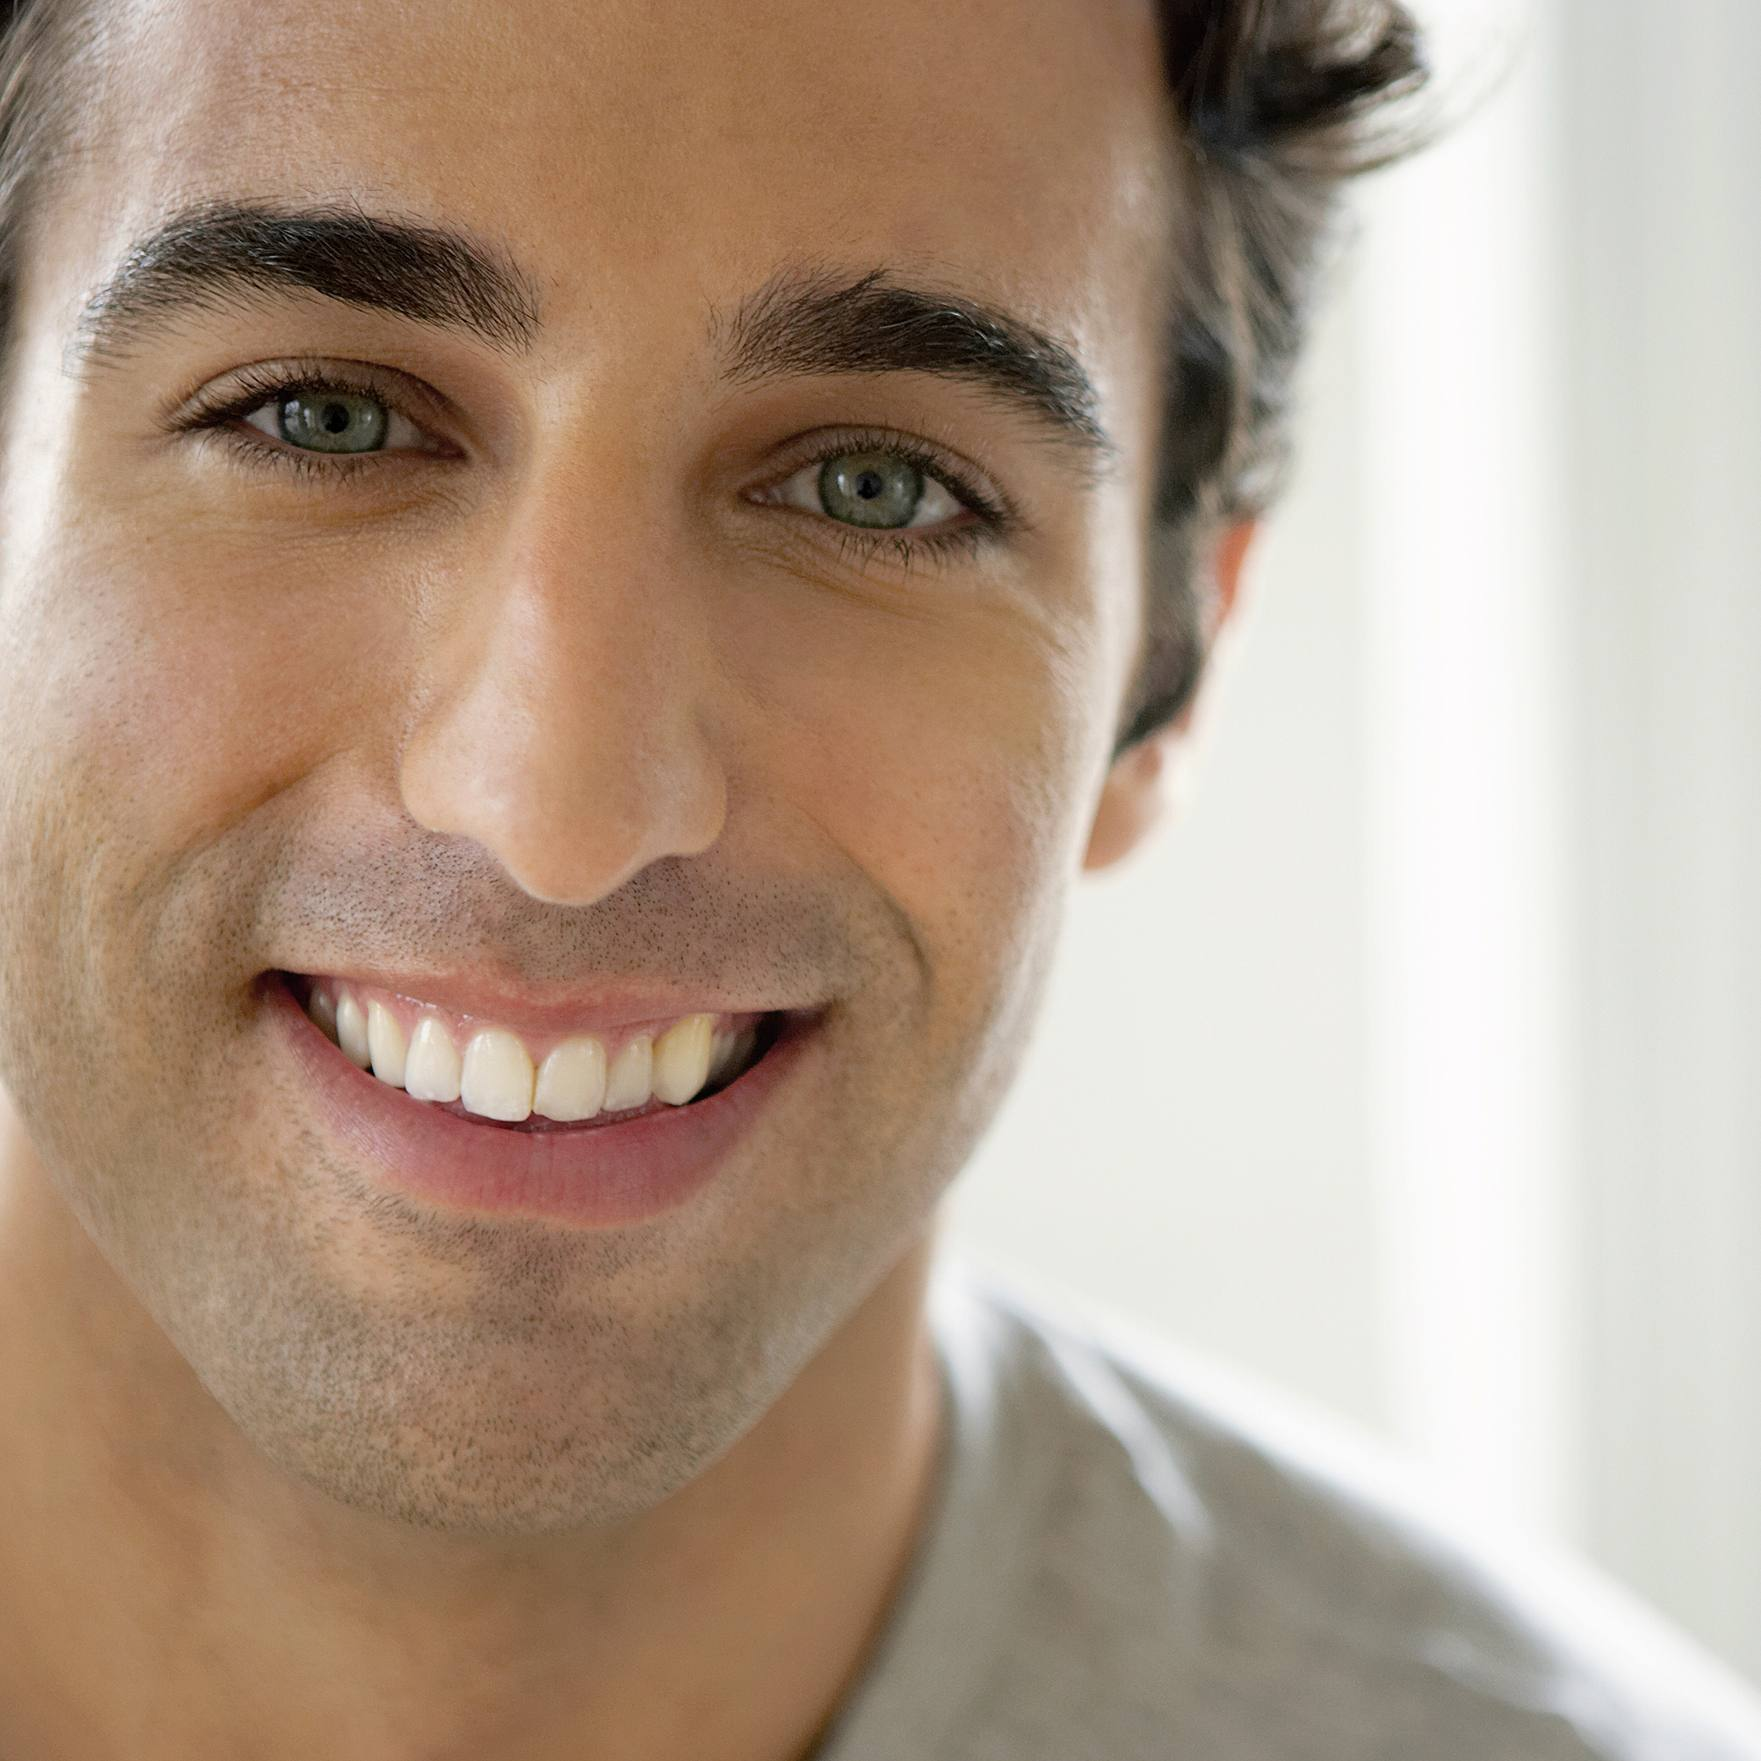 a close-up of a smiling young man